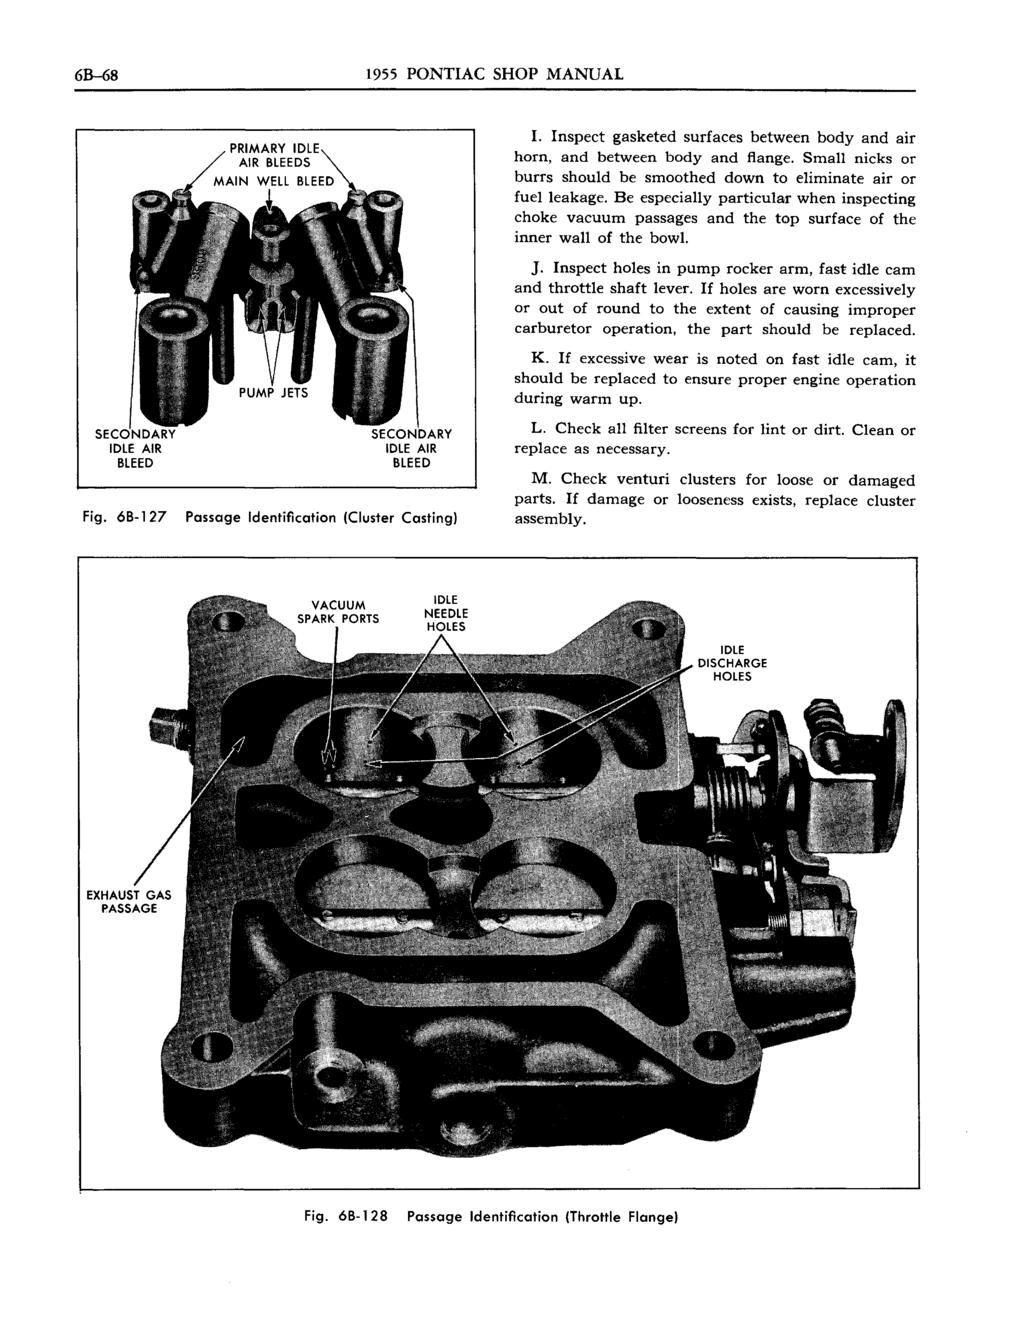 6B-68 1955 PONTIAC SHOP MANUAL SE IDLE AIR BLEED Fig. 68-127 Passage Identification (Cluster Casting) I. Inspect gasketed surfaces between body and air horn, and between body and flange.